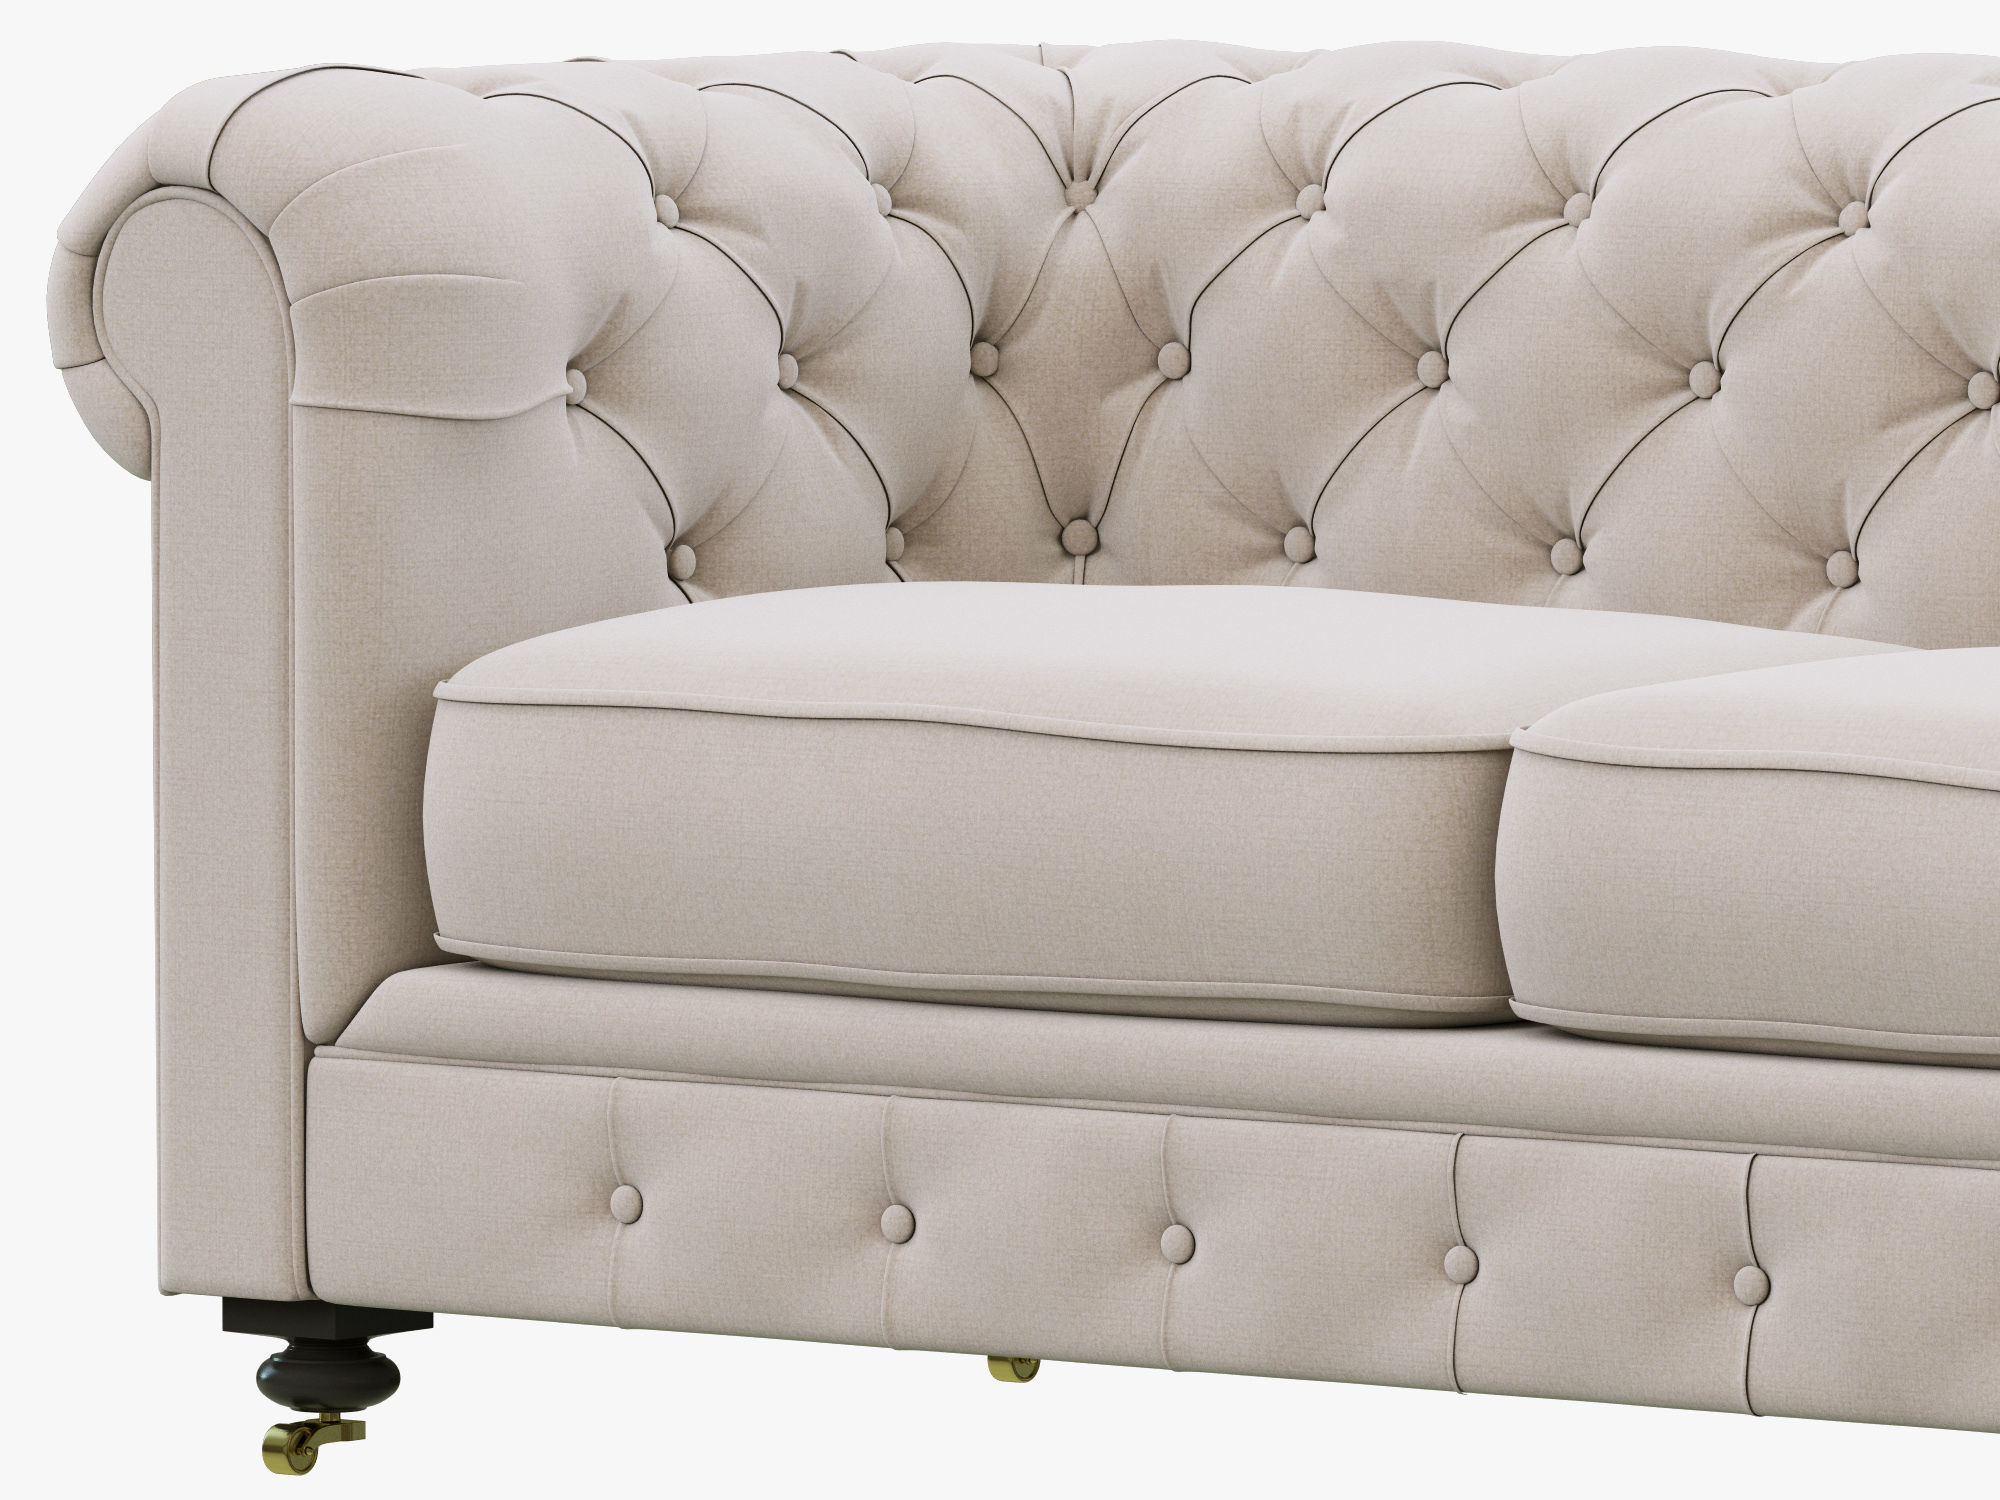 restoration hardware kensington sofa leather material texture droughtrelief org